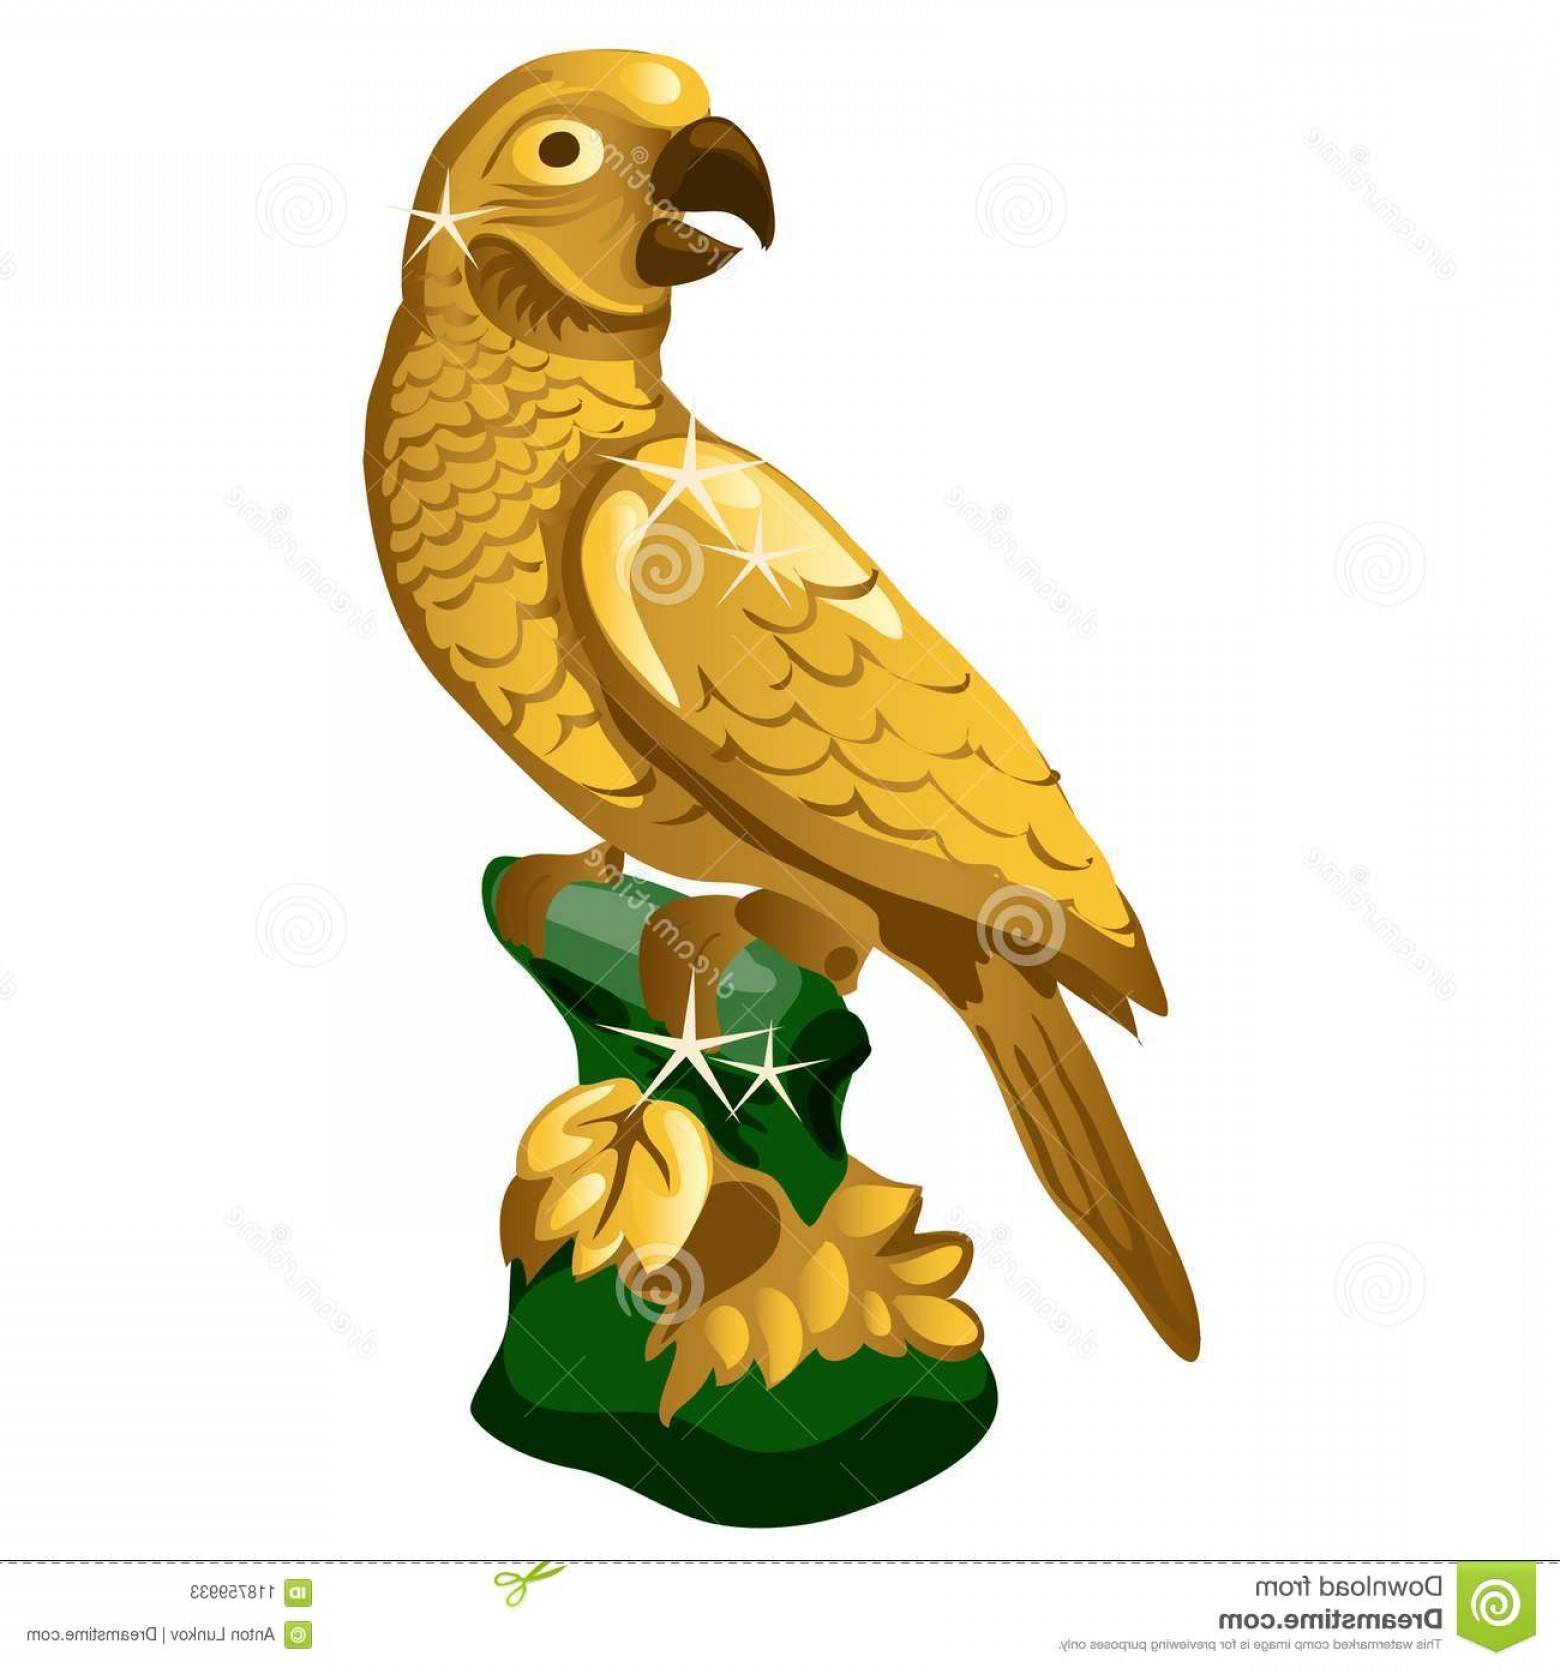 Ancient Jungle Statue Vector Images: Golden Statue Parrot Isolated White Background Vector Illustration Golden Statue Parrot Isolated White Image